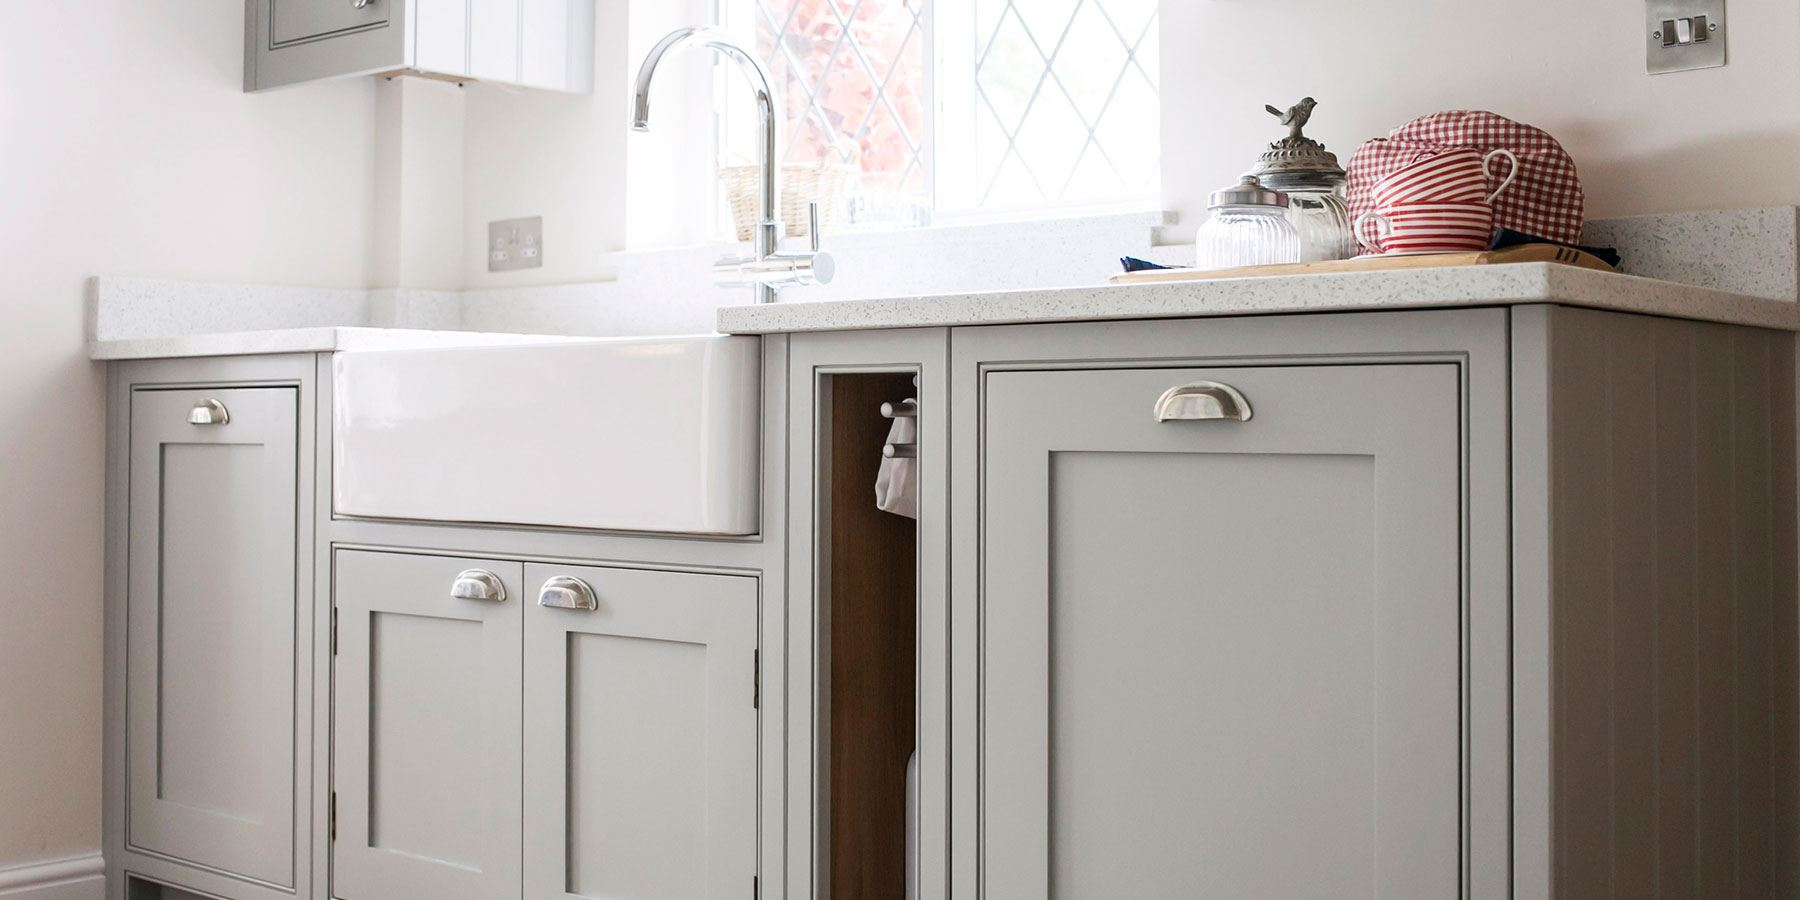 Country Kitchen Bespoke Handmade Country Kitchens Kent Burlanes